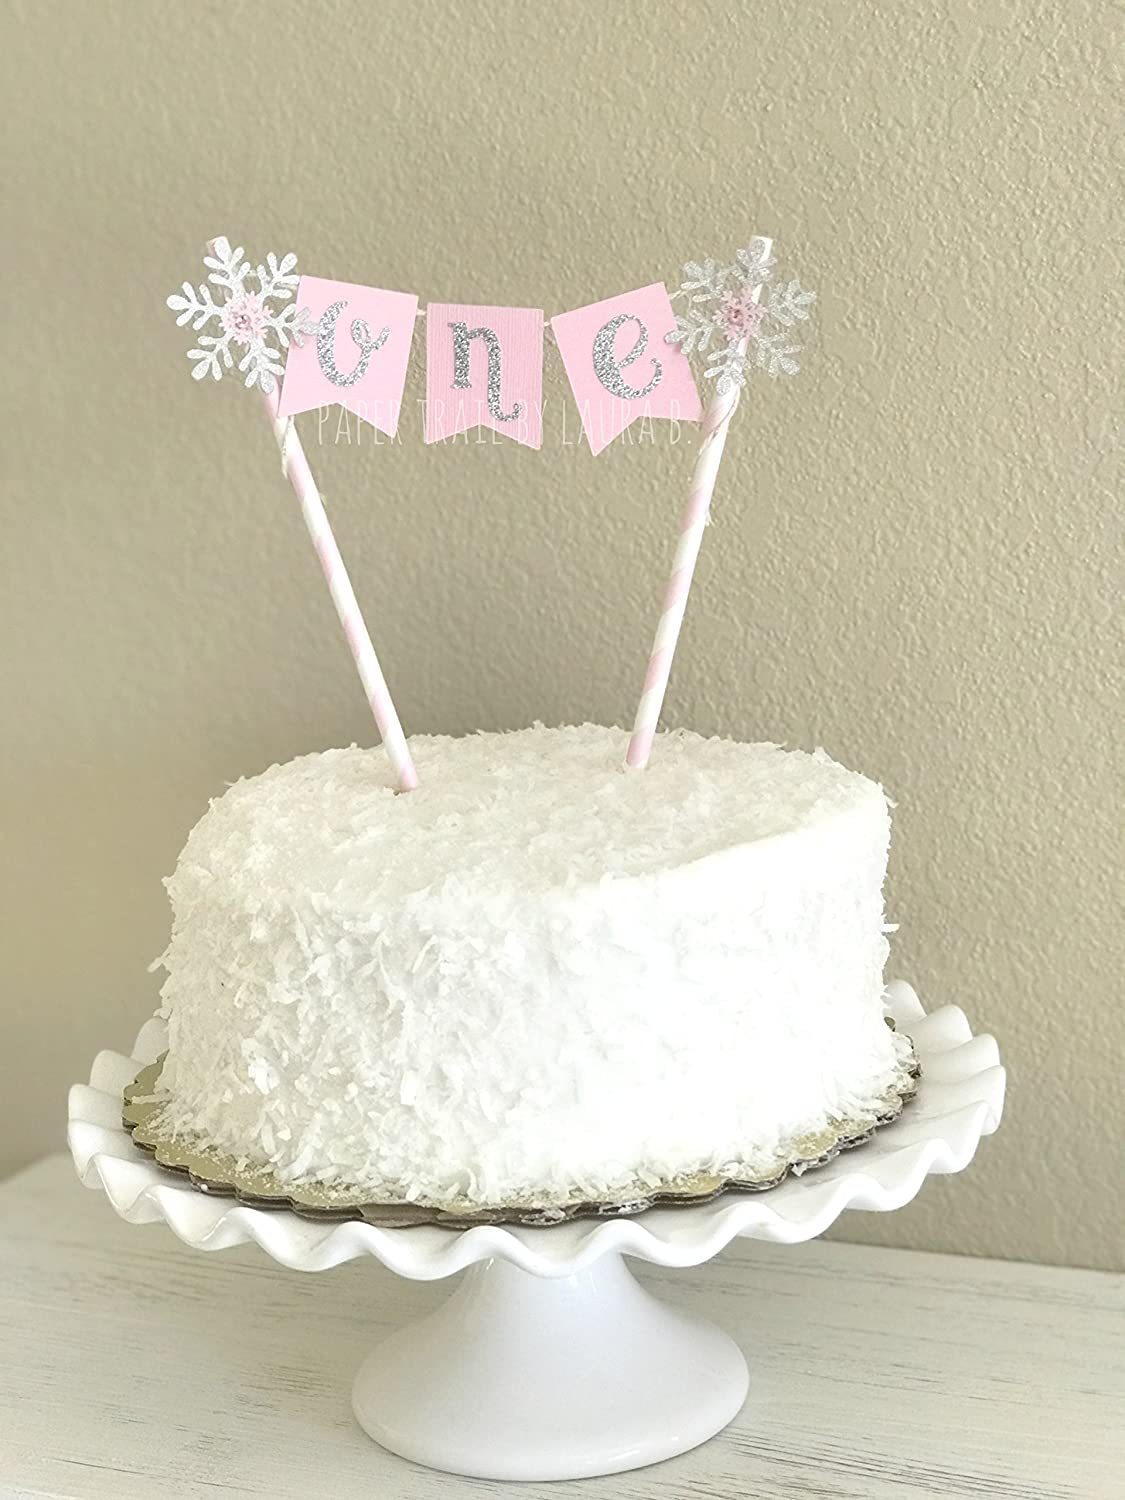 Austin Mall Snowflake Cake Topper. Pink Ranking TOP1 and Party Wonderland Winter Silver D